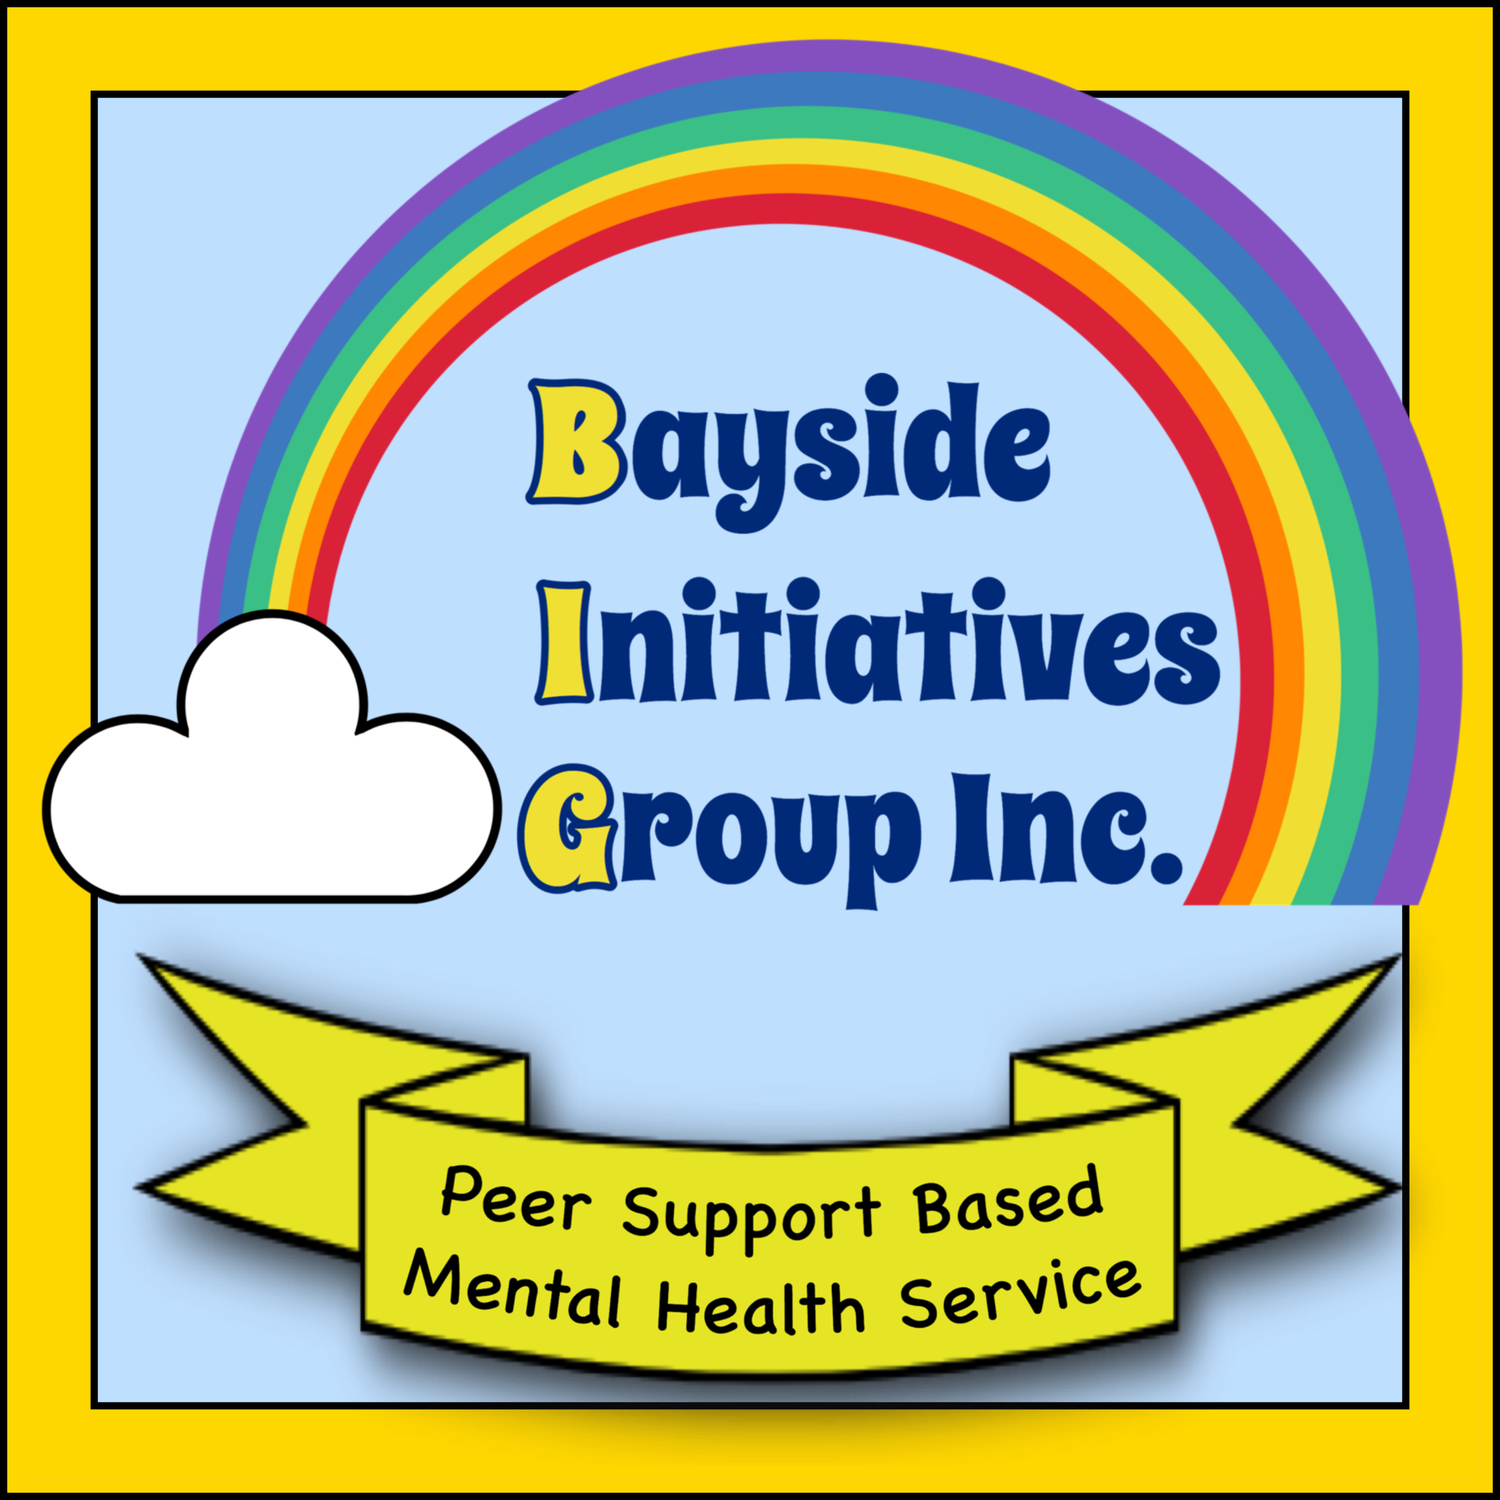 Bayside Initiatives Group Inc.